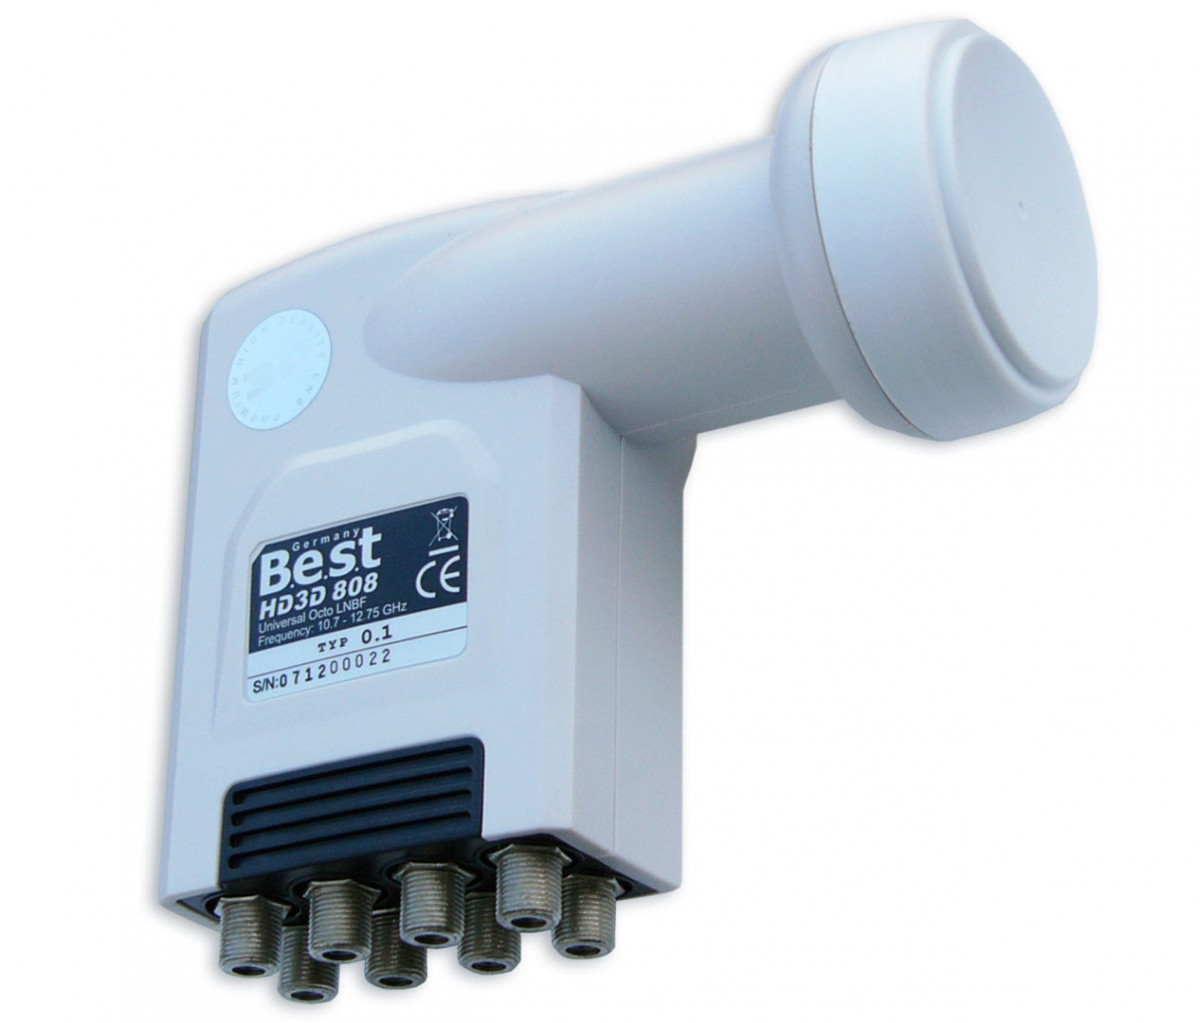 LNB Octo Best Germany 0,1 dB HDTV HD Ready HQDL 808 FullHD 1080p 3D NEU